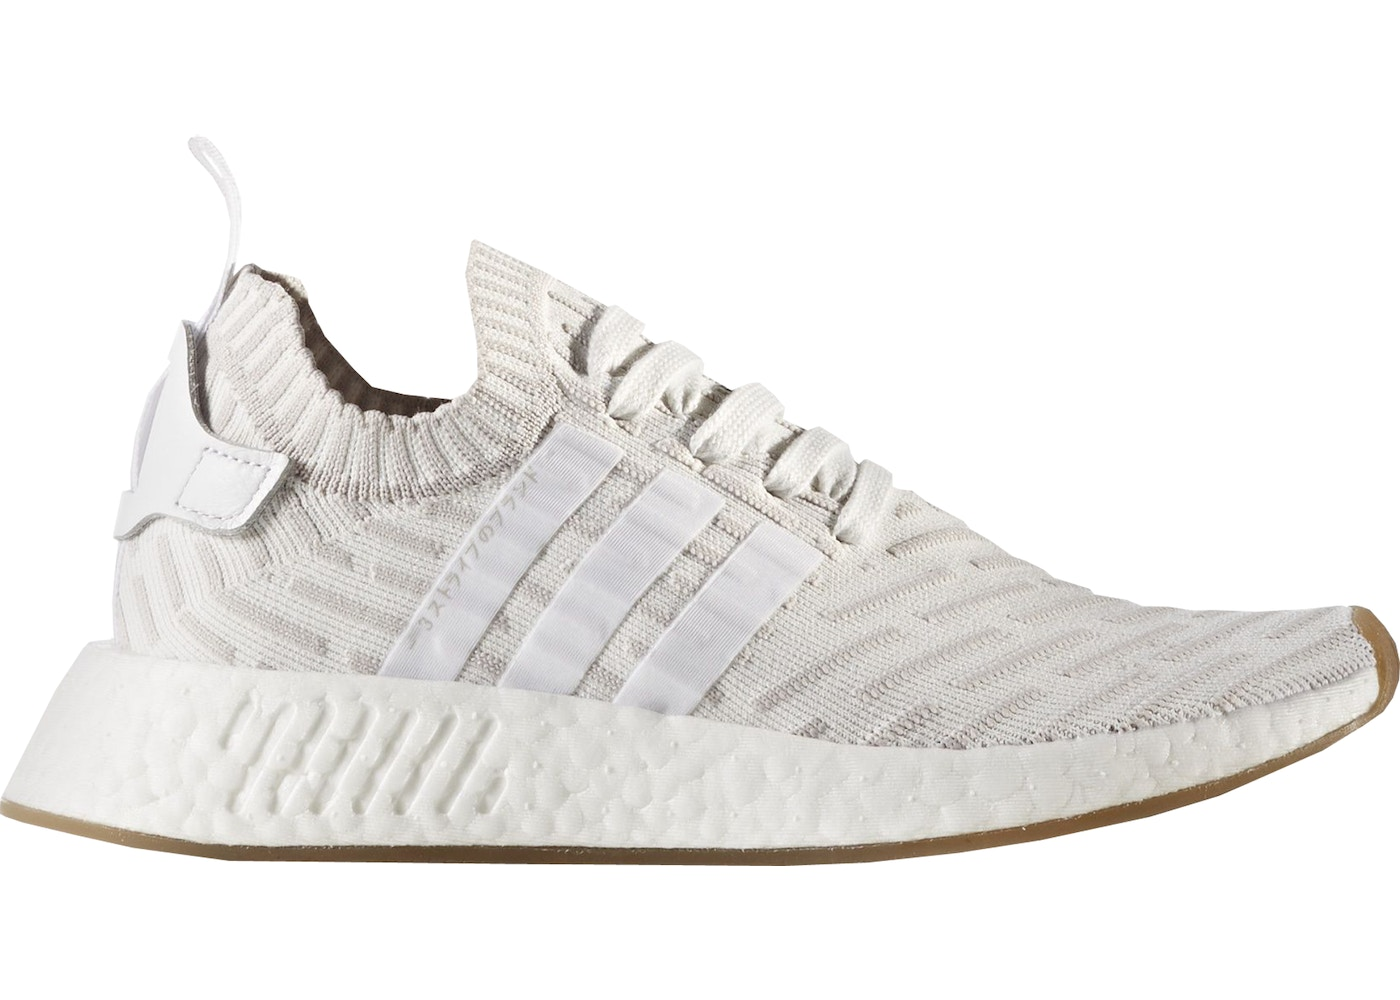 reputable site 7da34 4e780 adidas NMD R2 Running White Shock Pink (W)